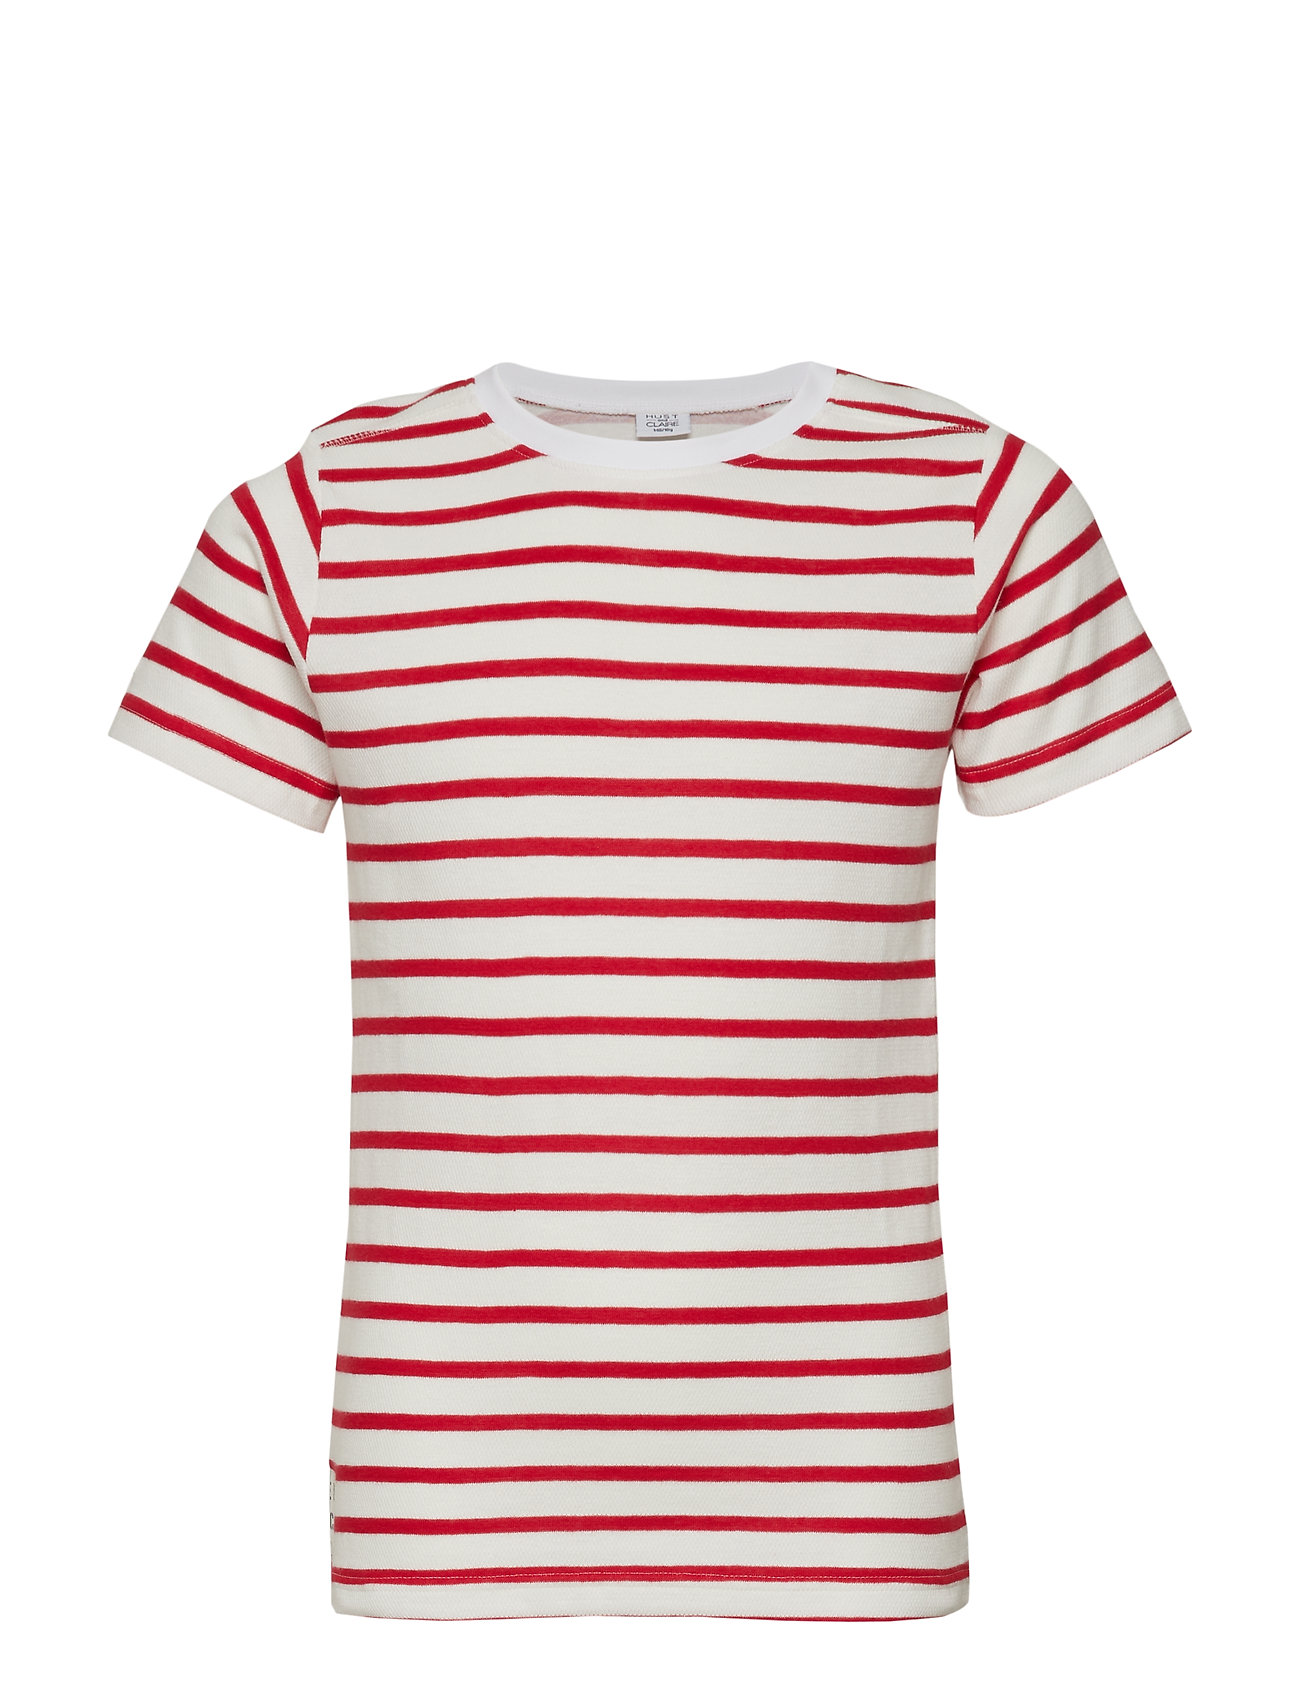 Hust & Claire Alwin - T-shirt S/S - RED PATROL